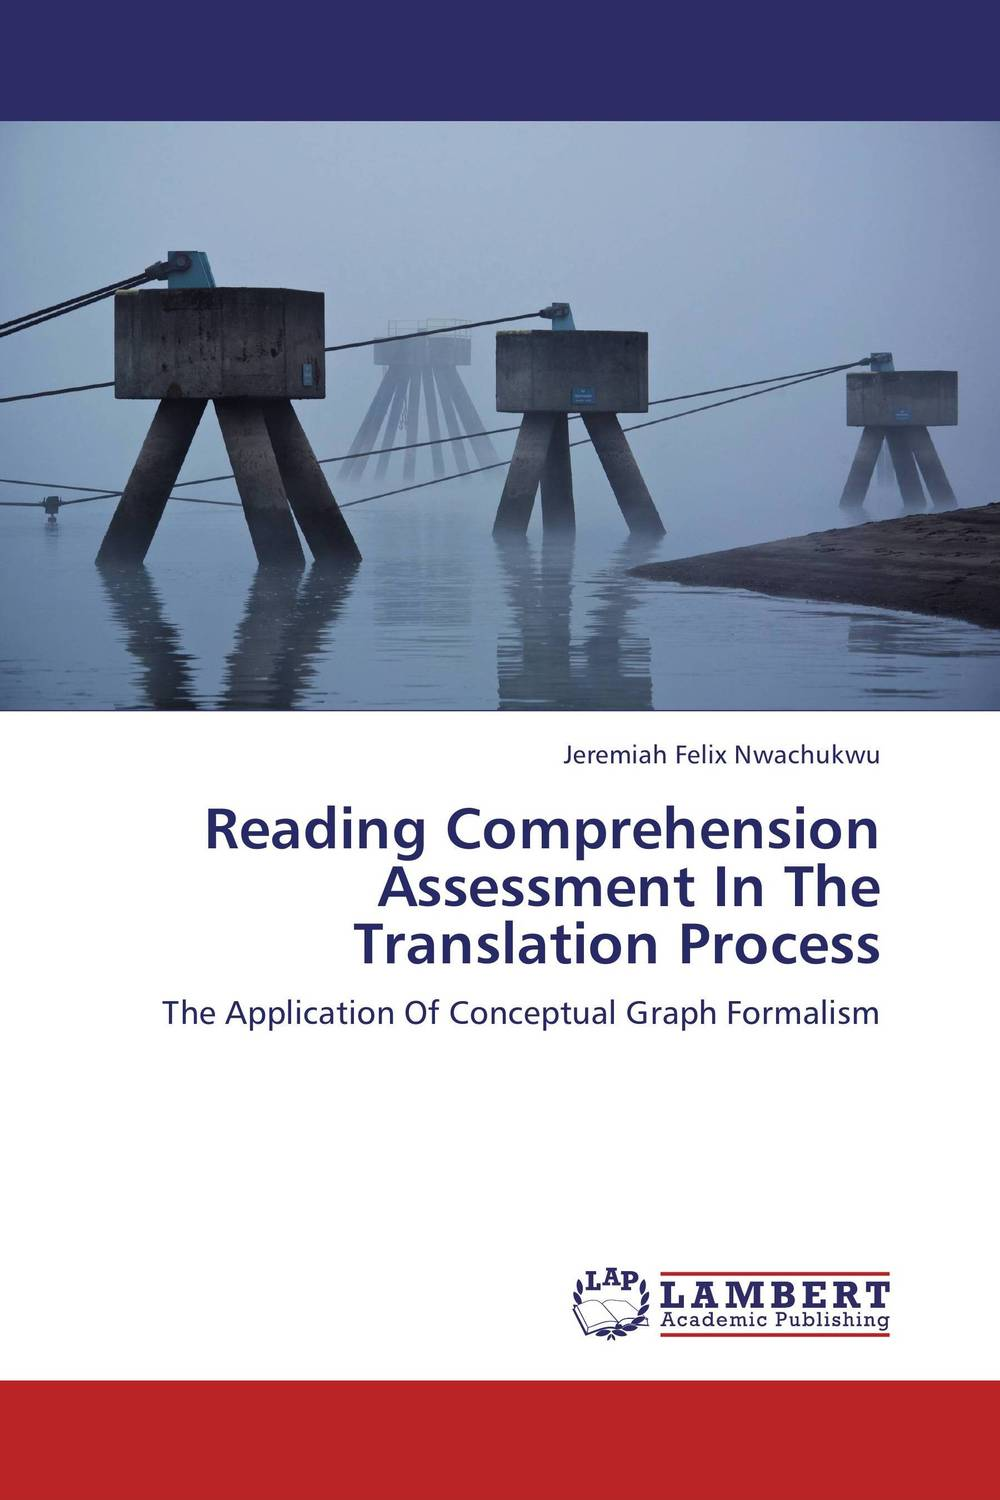 Reading Comprehension Assessment In The Translation Process shahrzad dehghan kourosh akef and sholeh kolahi the role of brain dominance in translation quality